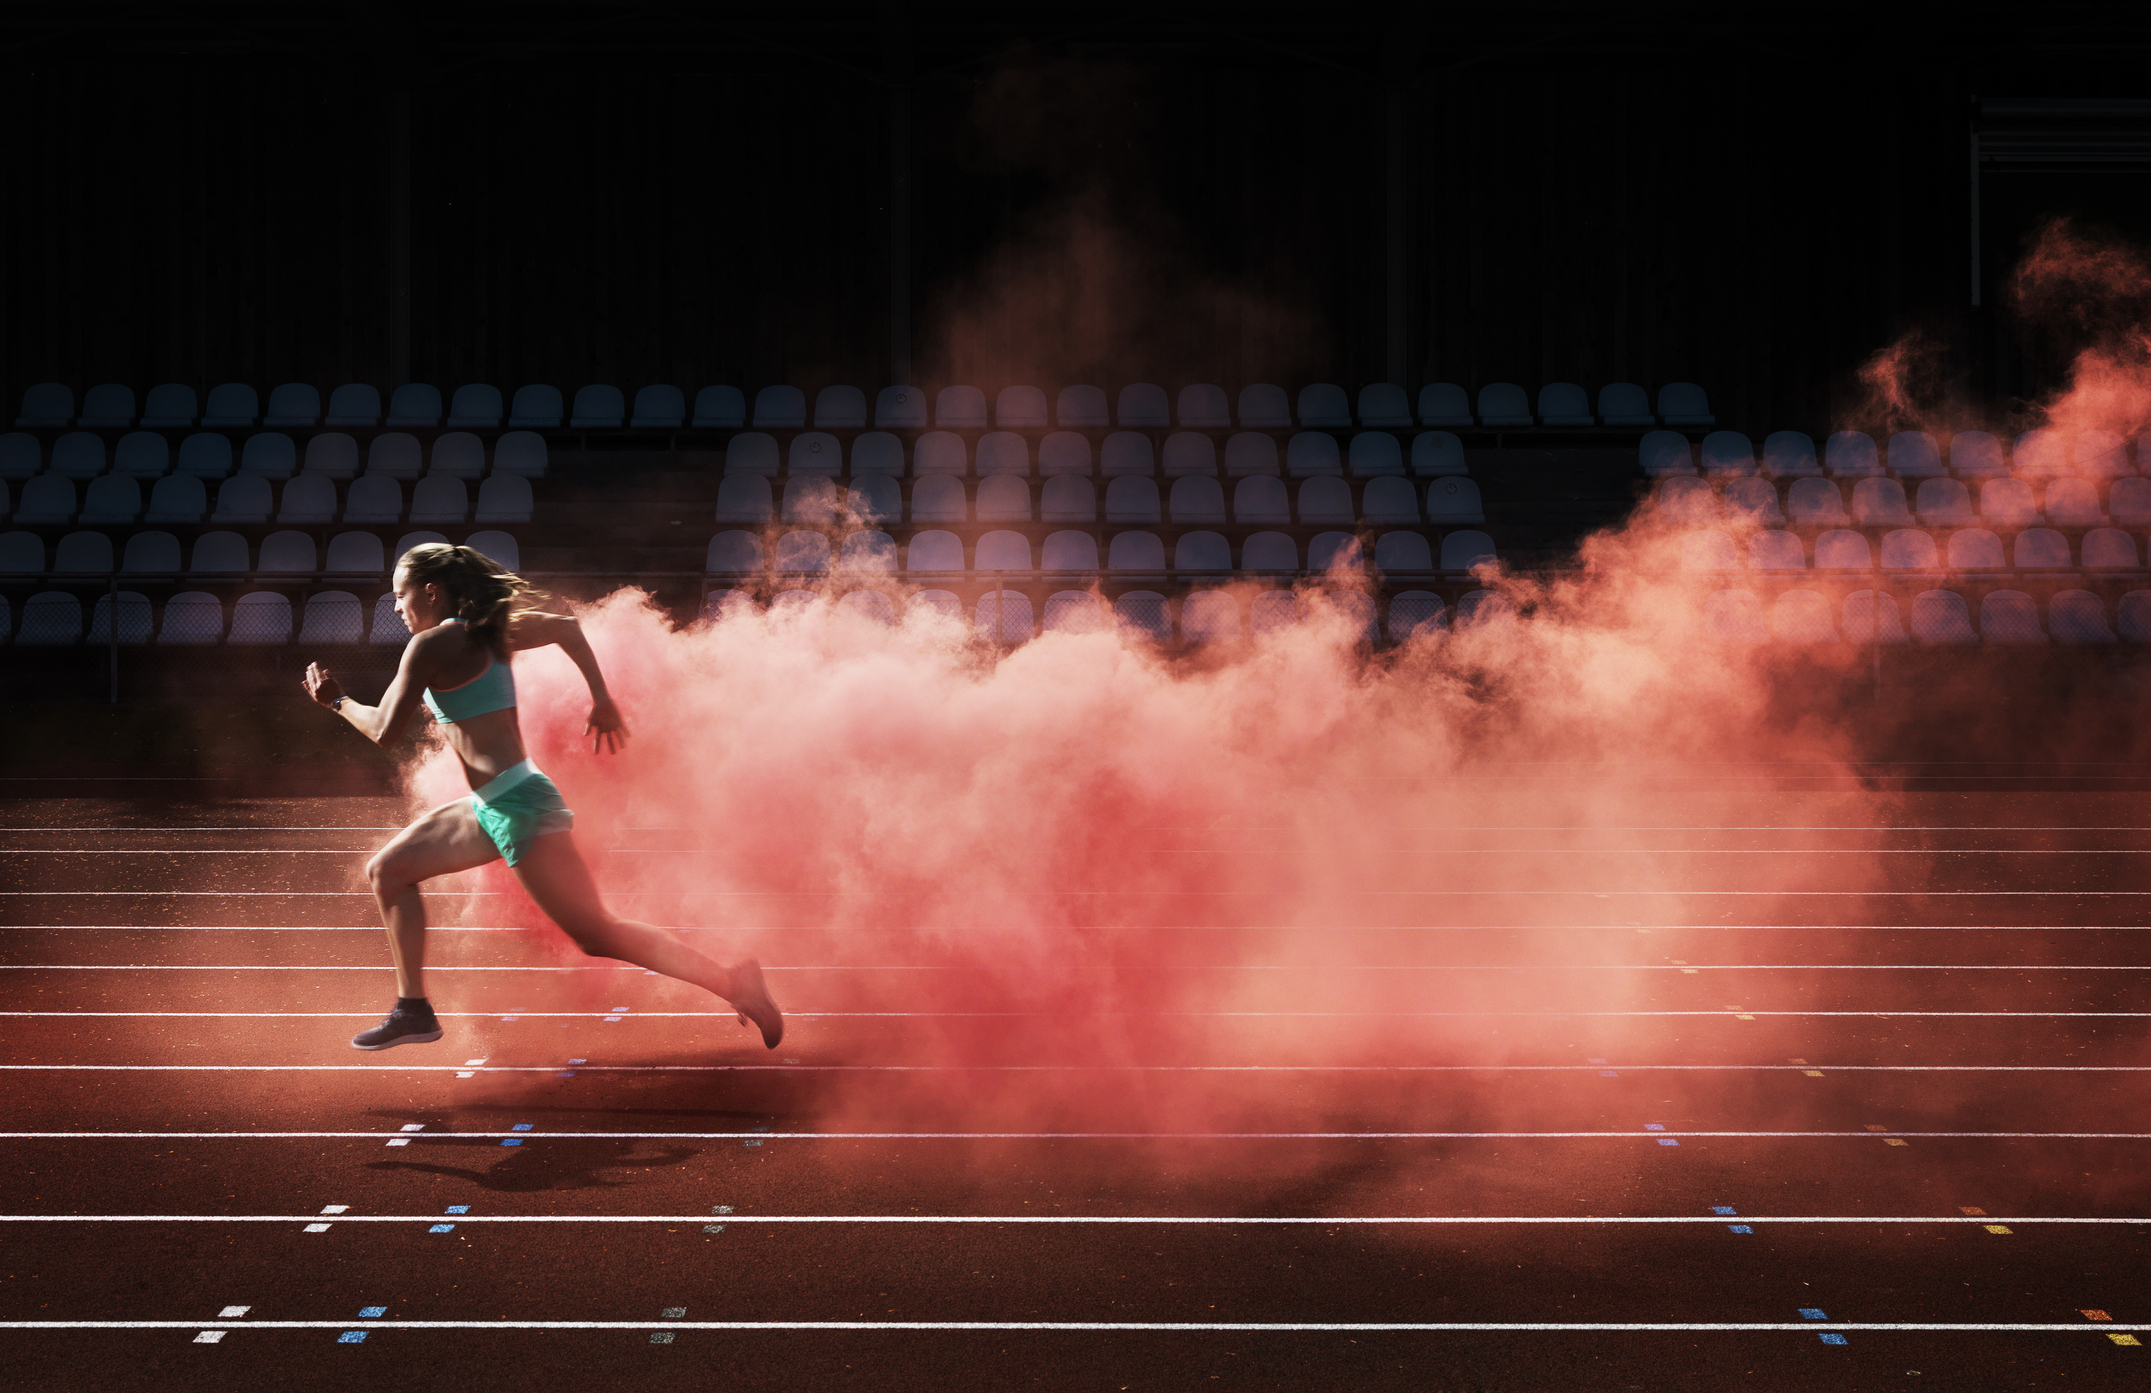 Female athlete unning on a race track and leaving behind a trail of red smoke